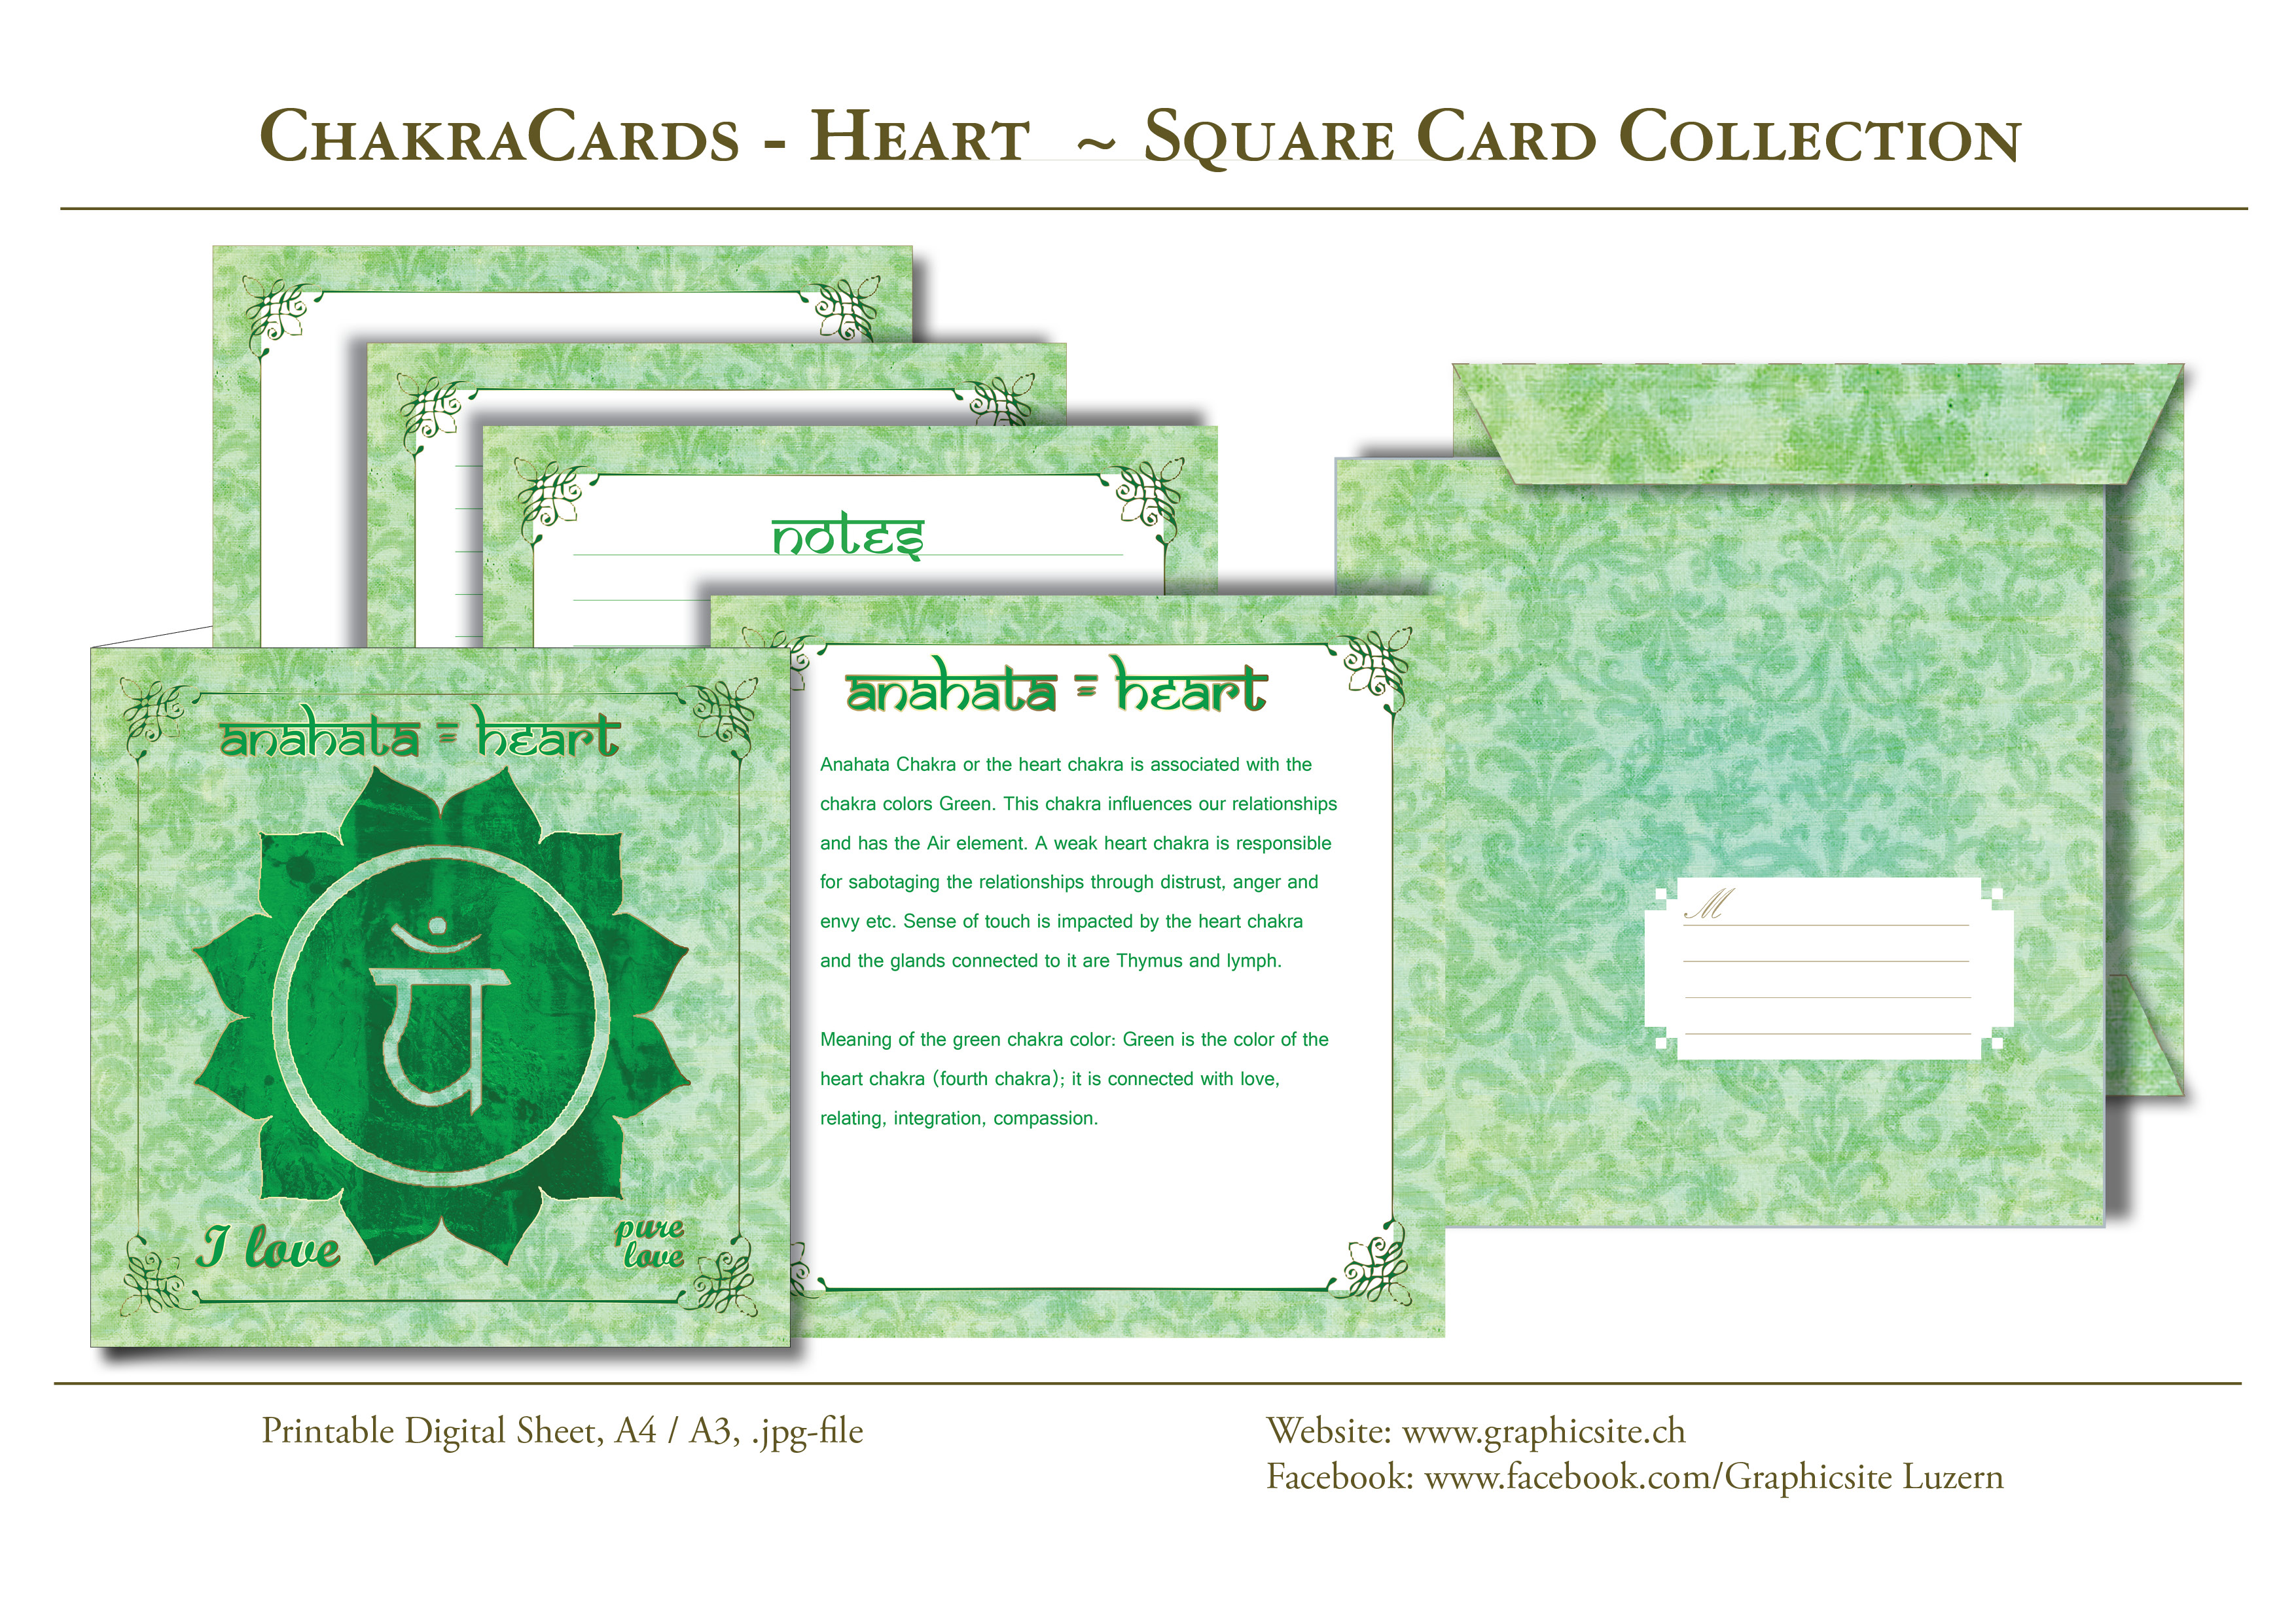 Printable Digital Sheets - Square Card Collections - Chakra Cards, Anahata, Heart,